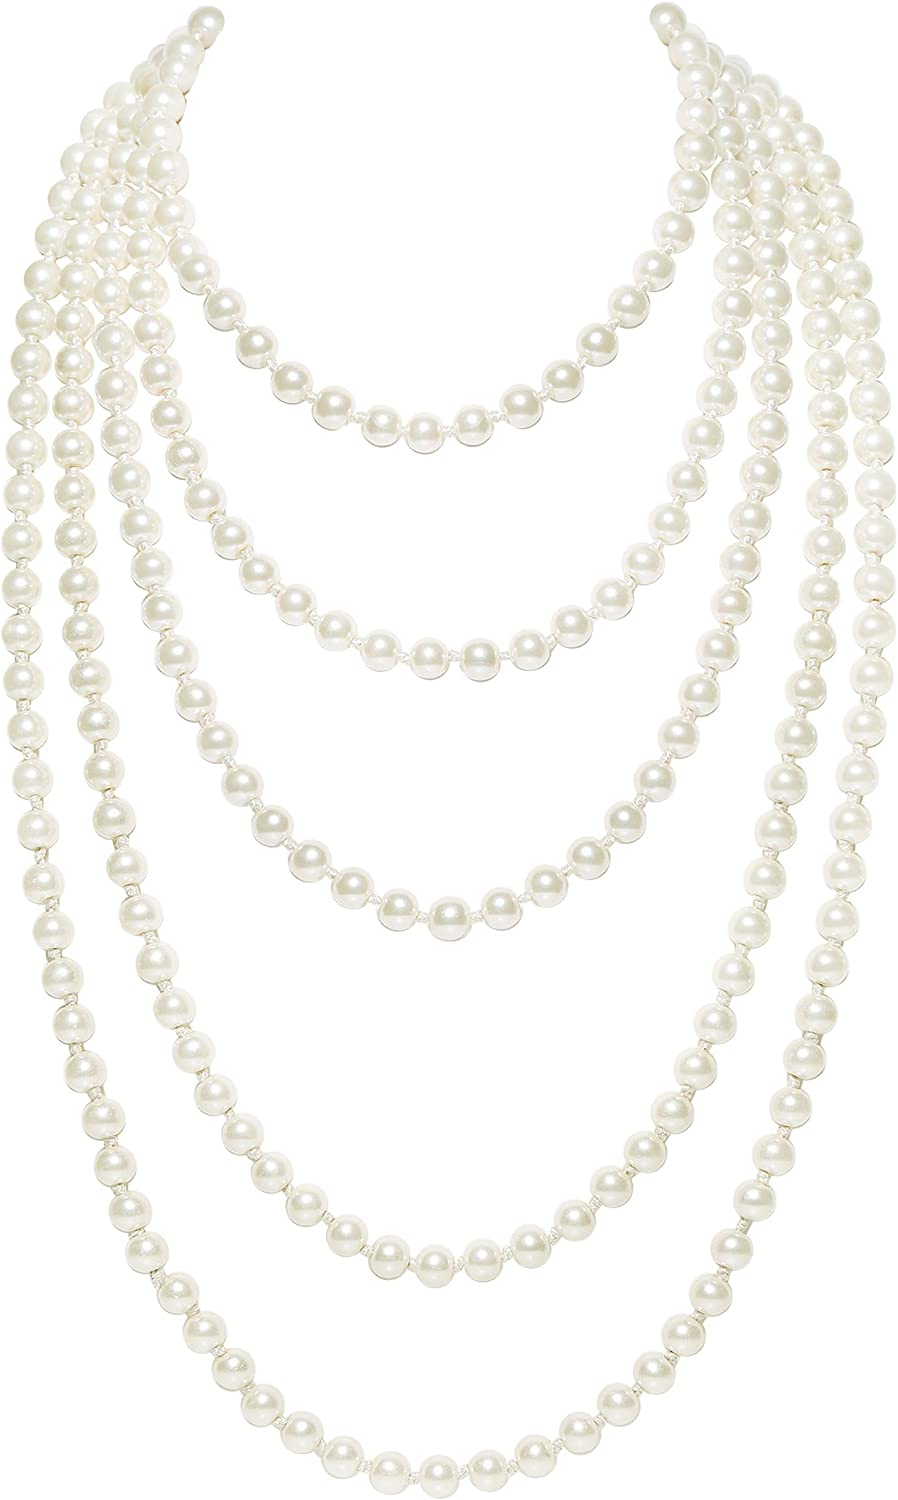 BABEYOND Vintage 1920s Gatsby Imitation Pearl Choker Necklace 20s Art Deco Flapper Accessories for Women White